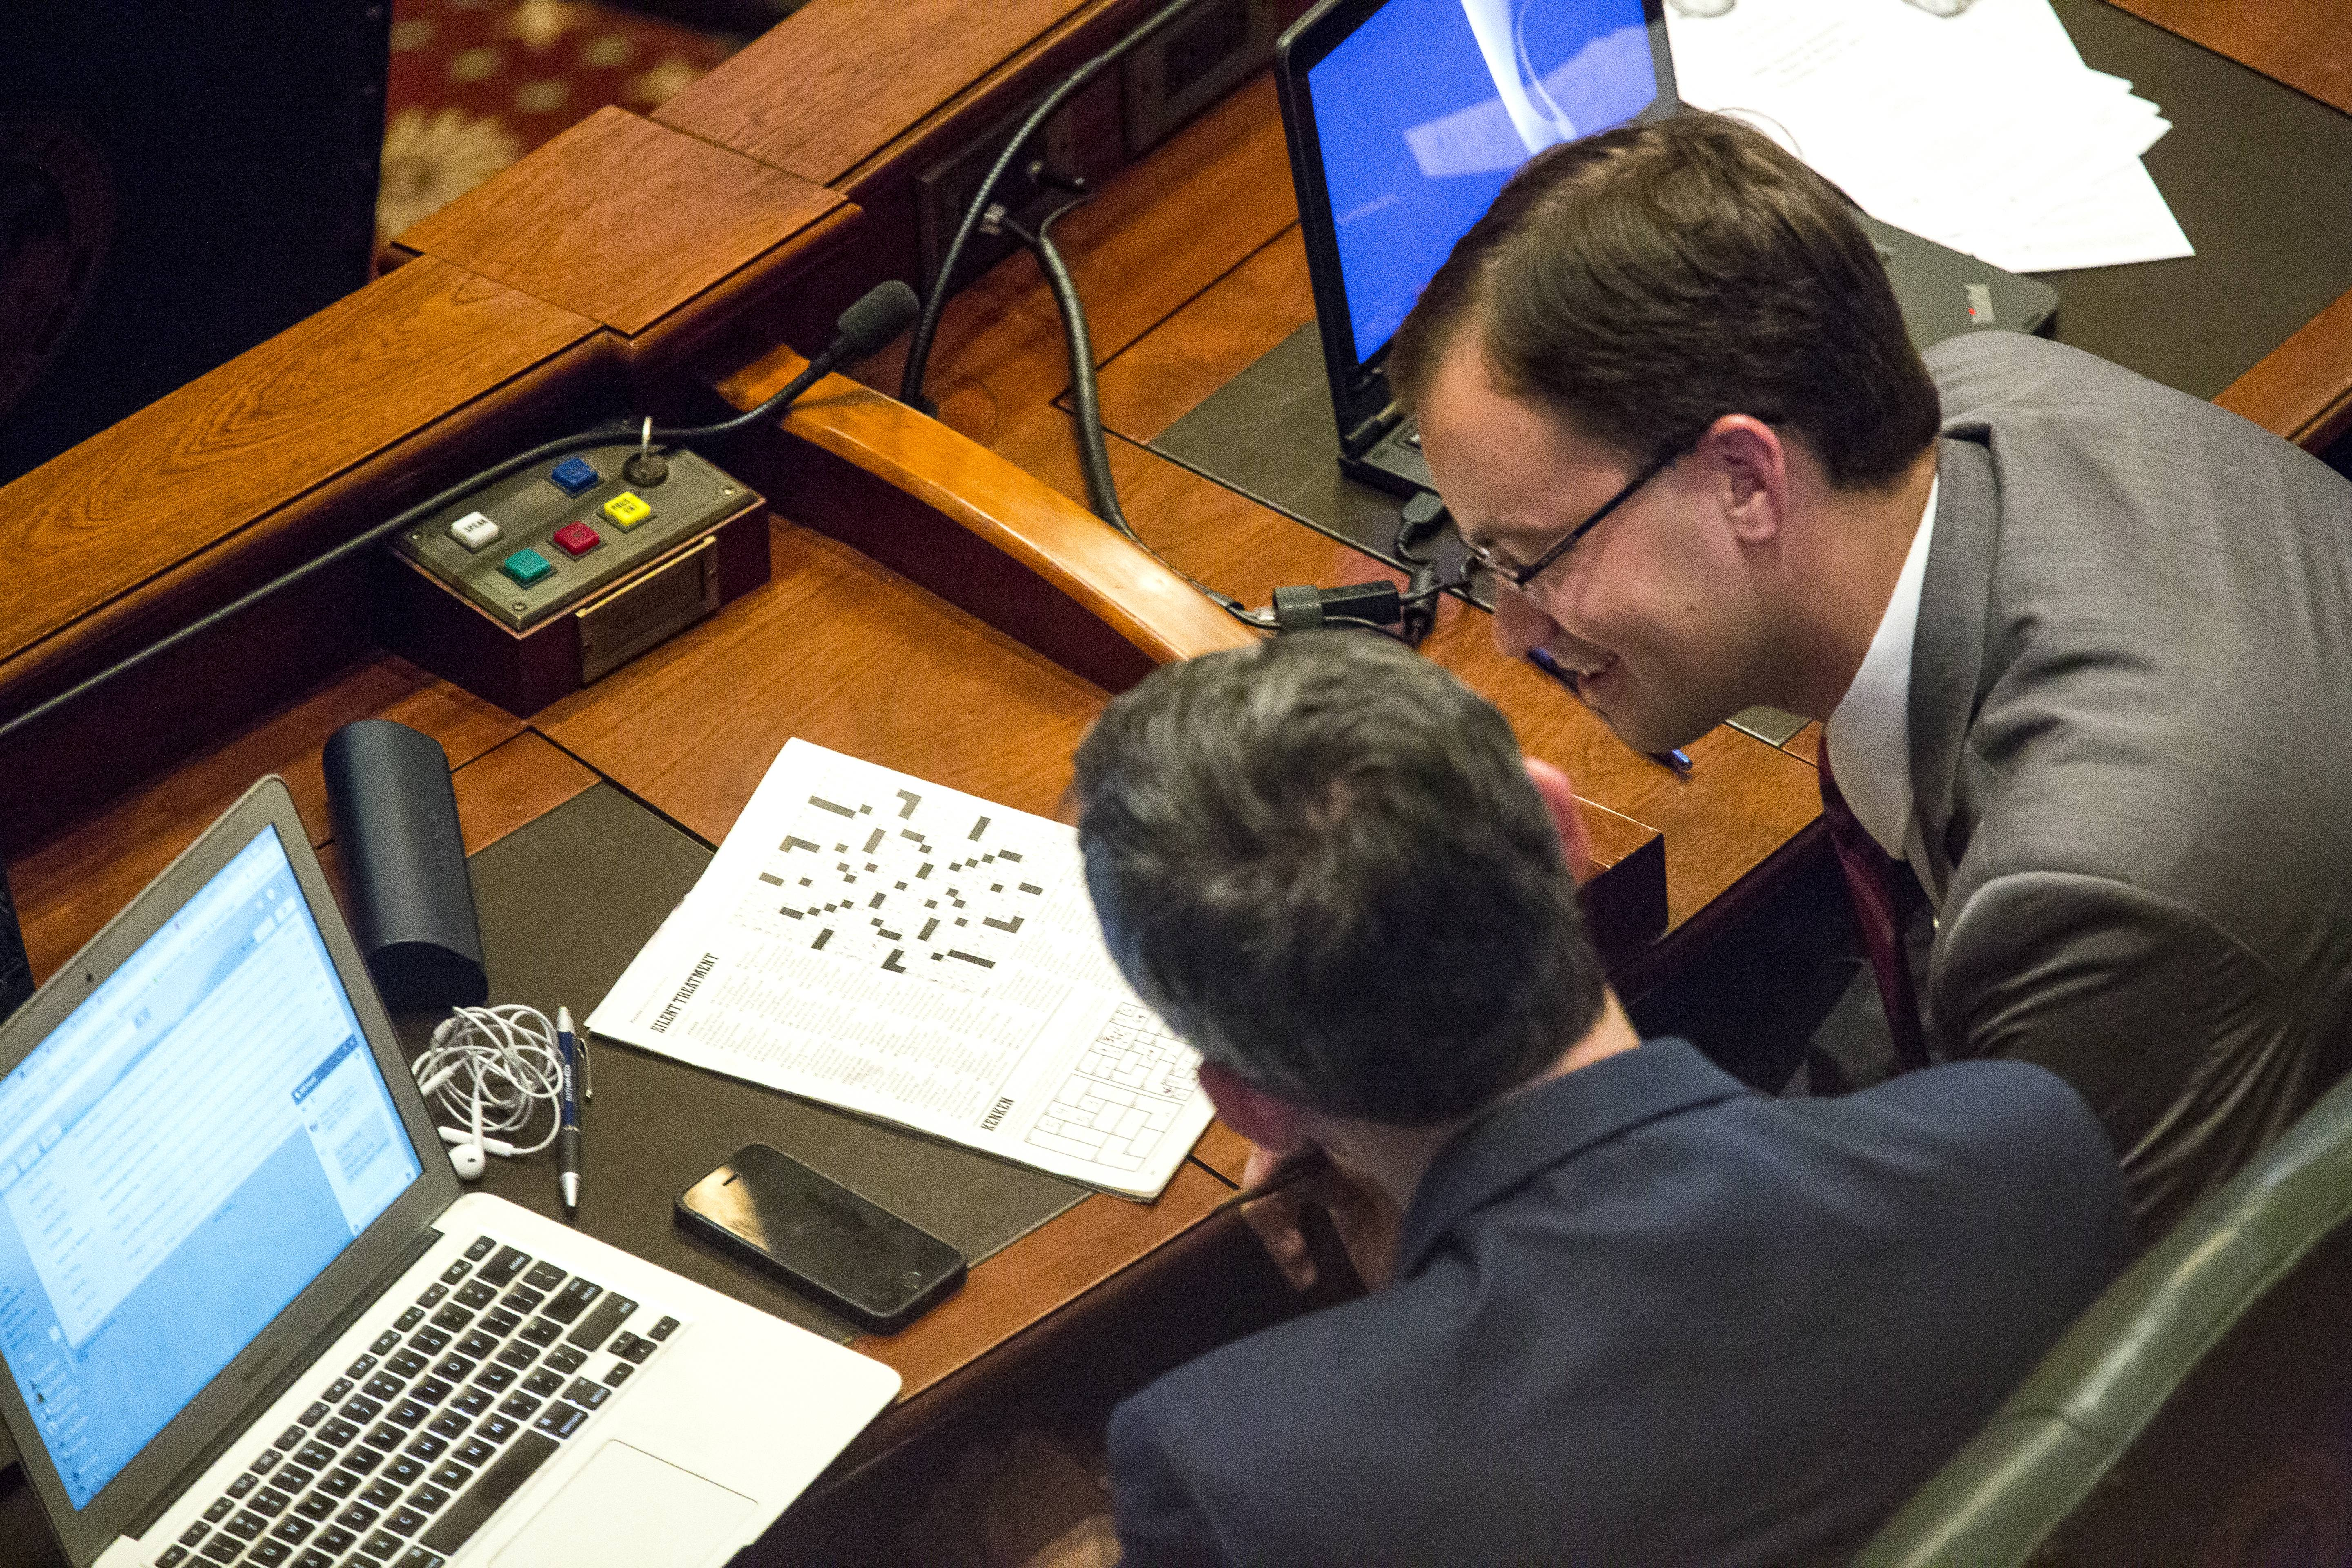 Rep. Will Guzzardi, D-Chicago, left, and Rep. David Olsen, R-Downers Grove, work on a puzzle on the House floor while the state Capitol is on lockdown during a hazardous materials incident Thursday in Springfield.